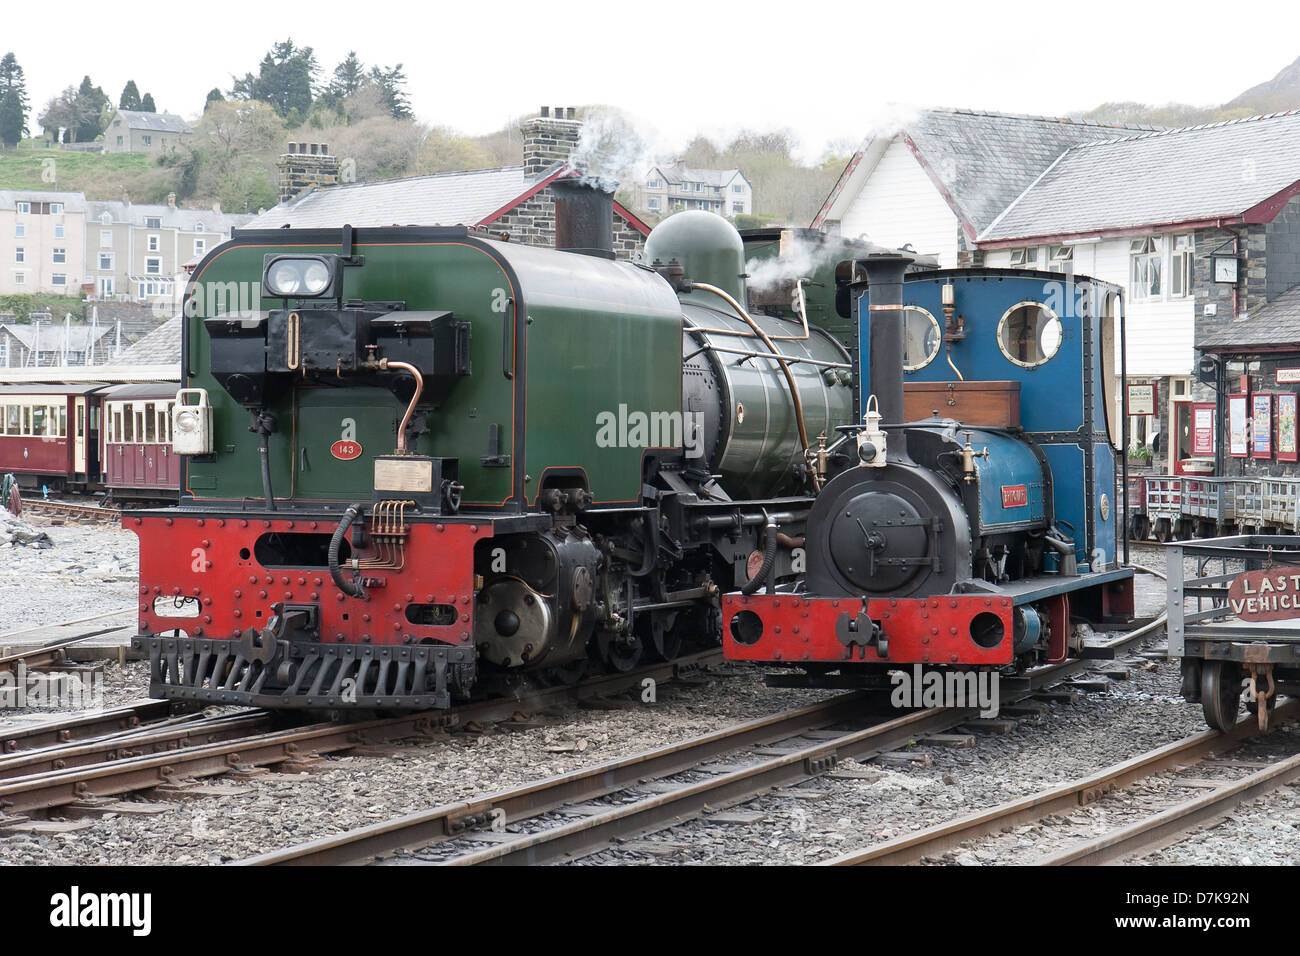 Steam locomotive on the Welsh Highland line railway Wales and the Ffestiniog Railway, Wales - Stock Image